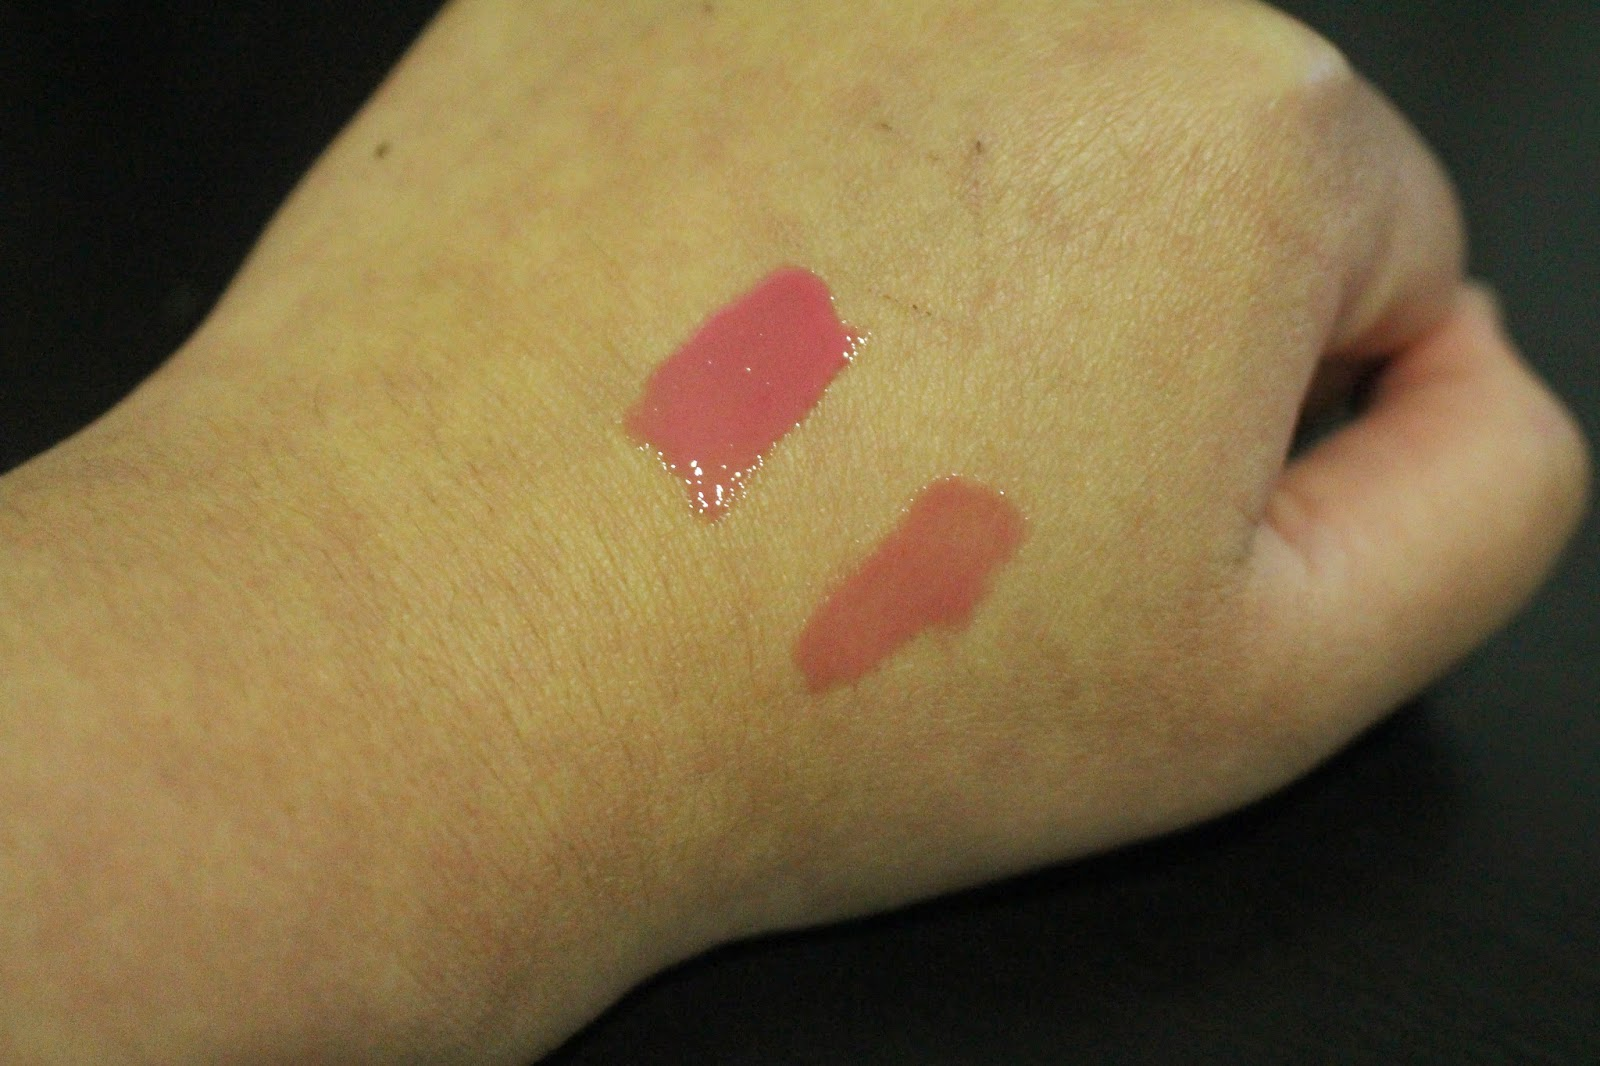 NYX Mega Shine Lip Gloss - Tea Rose Swatch